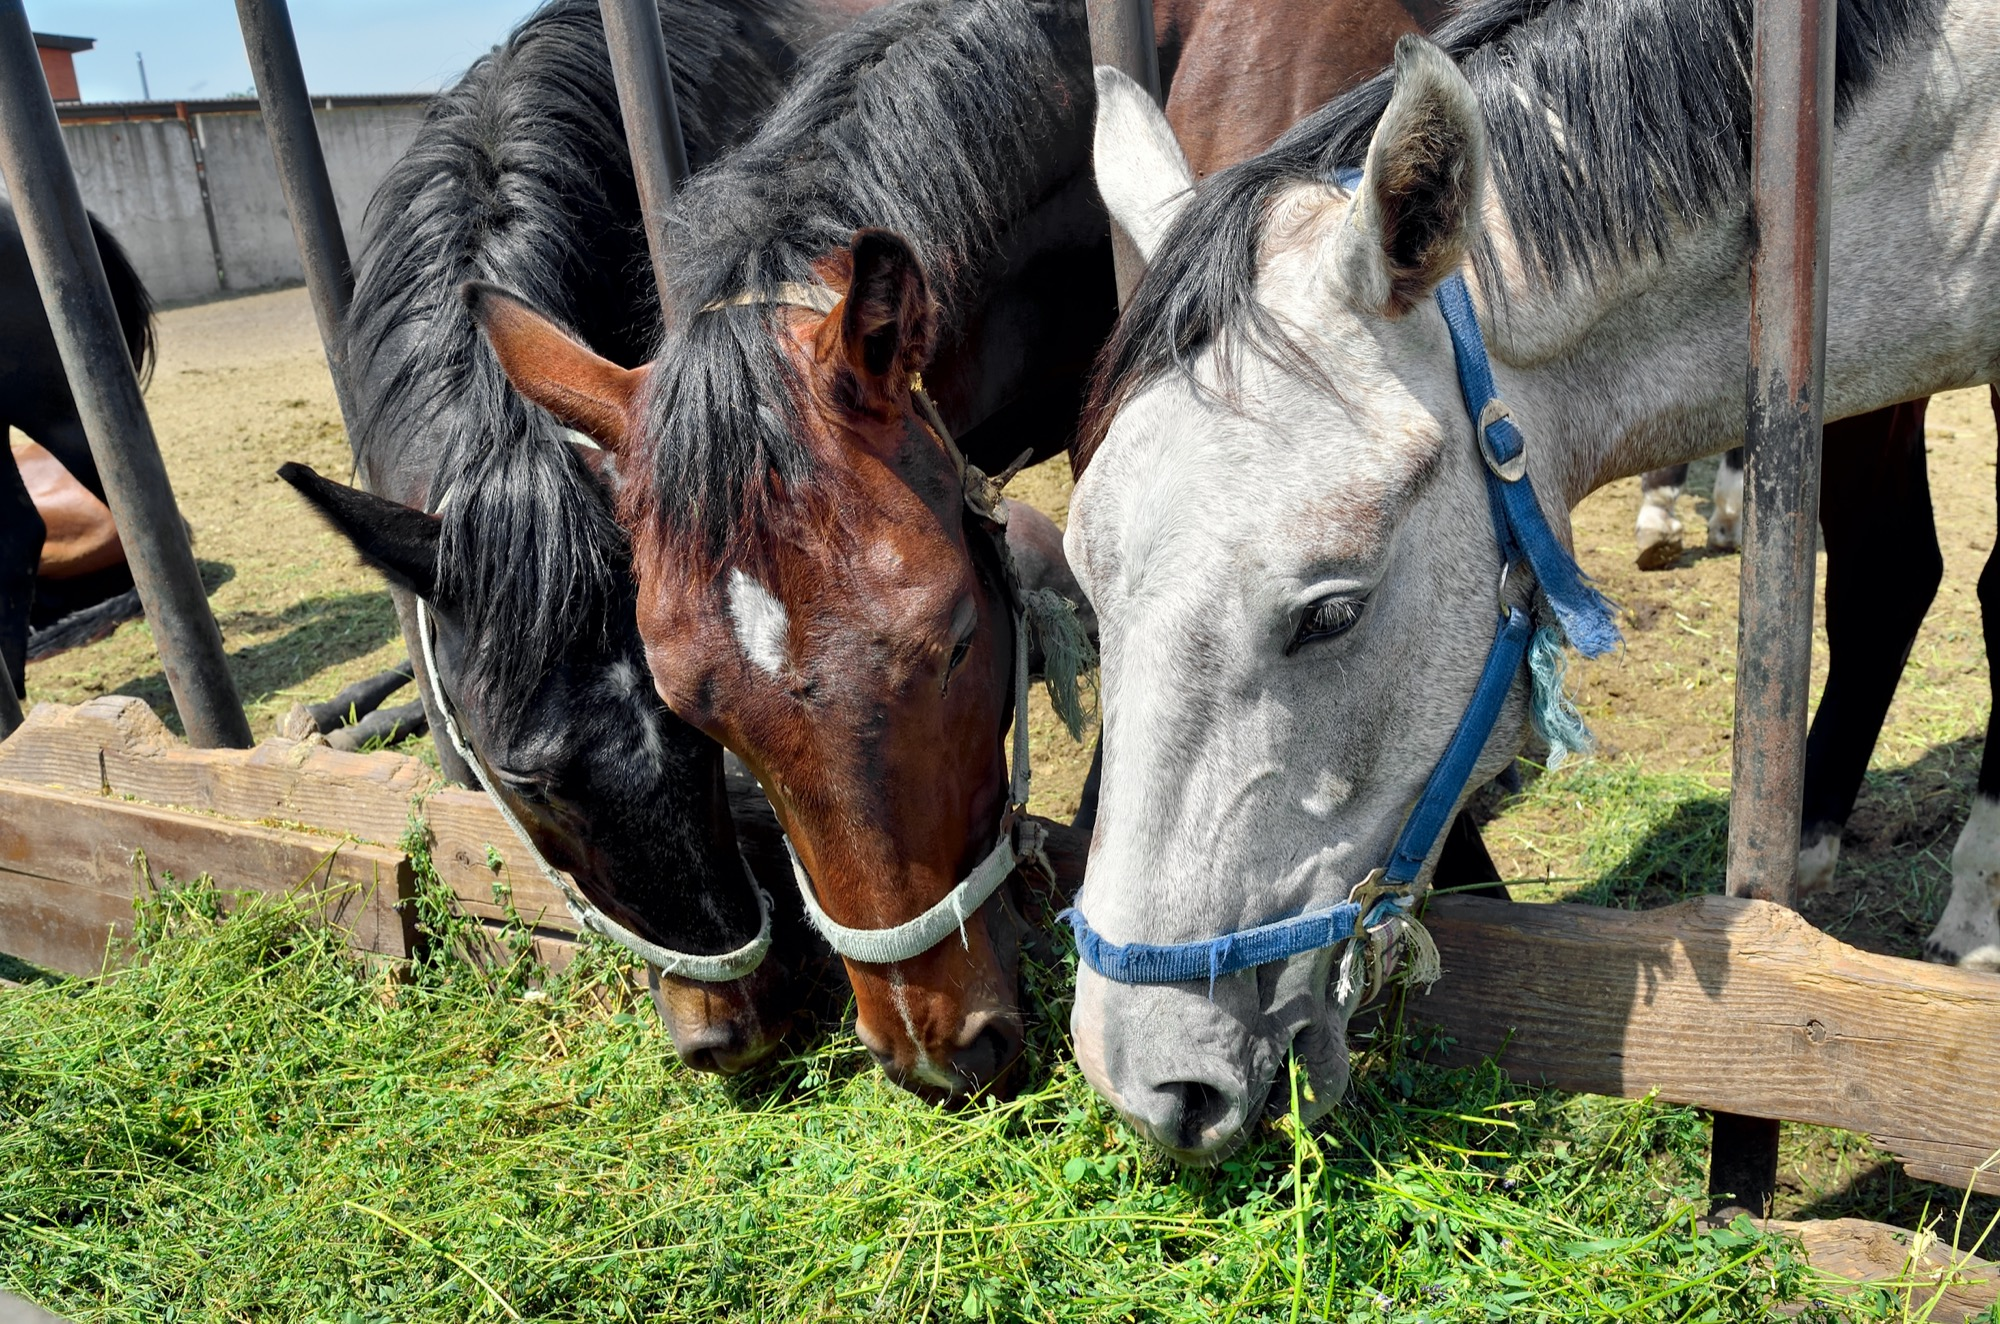 Horses without a slow feeder damaging their teeth on alfalfa